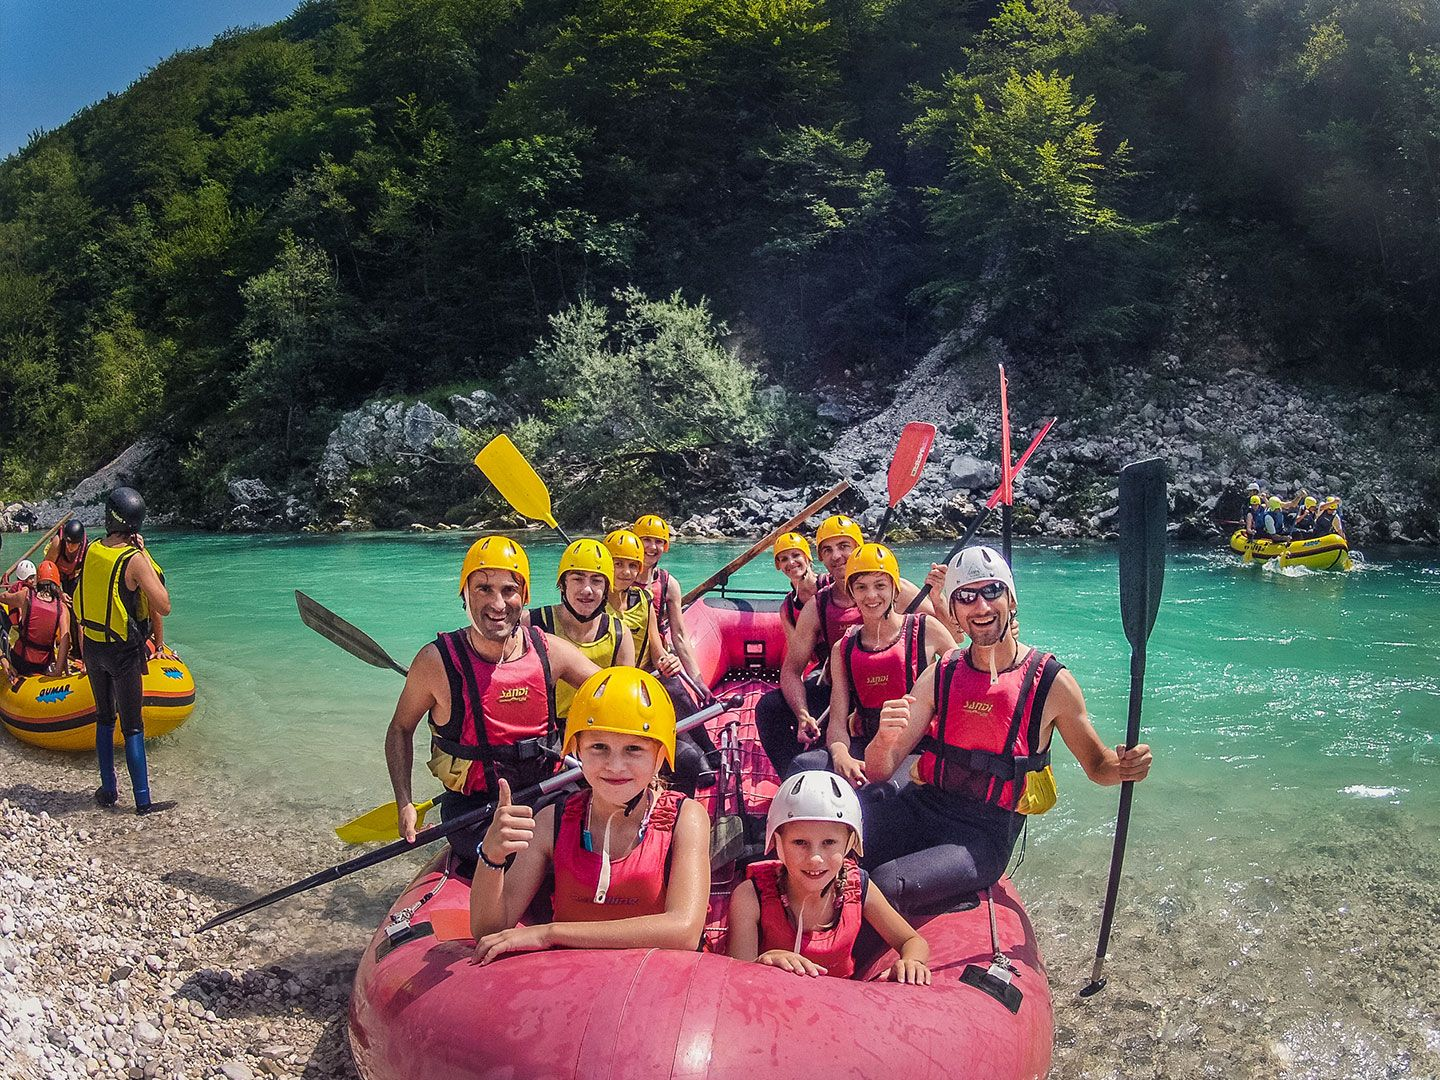 Family Rafting with Small Kids Bovec, Soca river, Triglav NP #1321e159-5a5a-4b75-9eee-8fcd3256067c